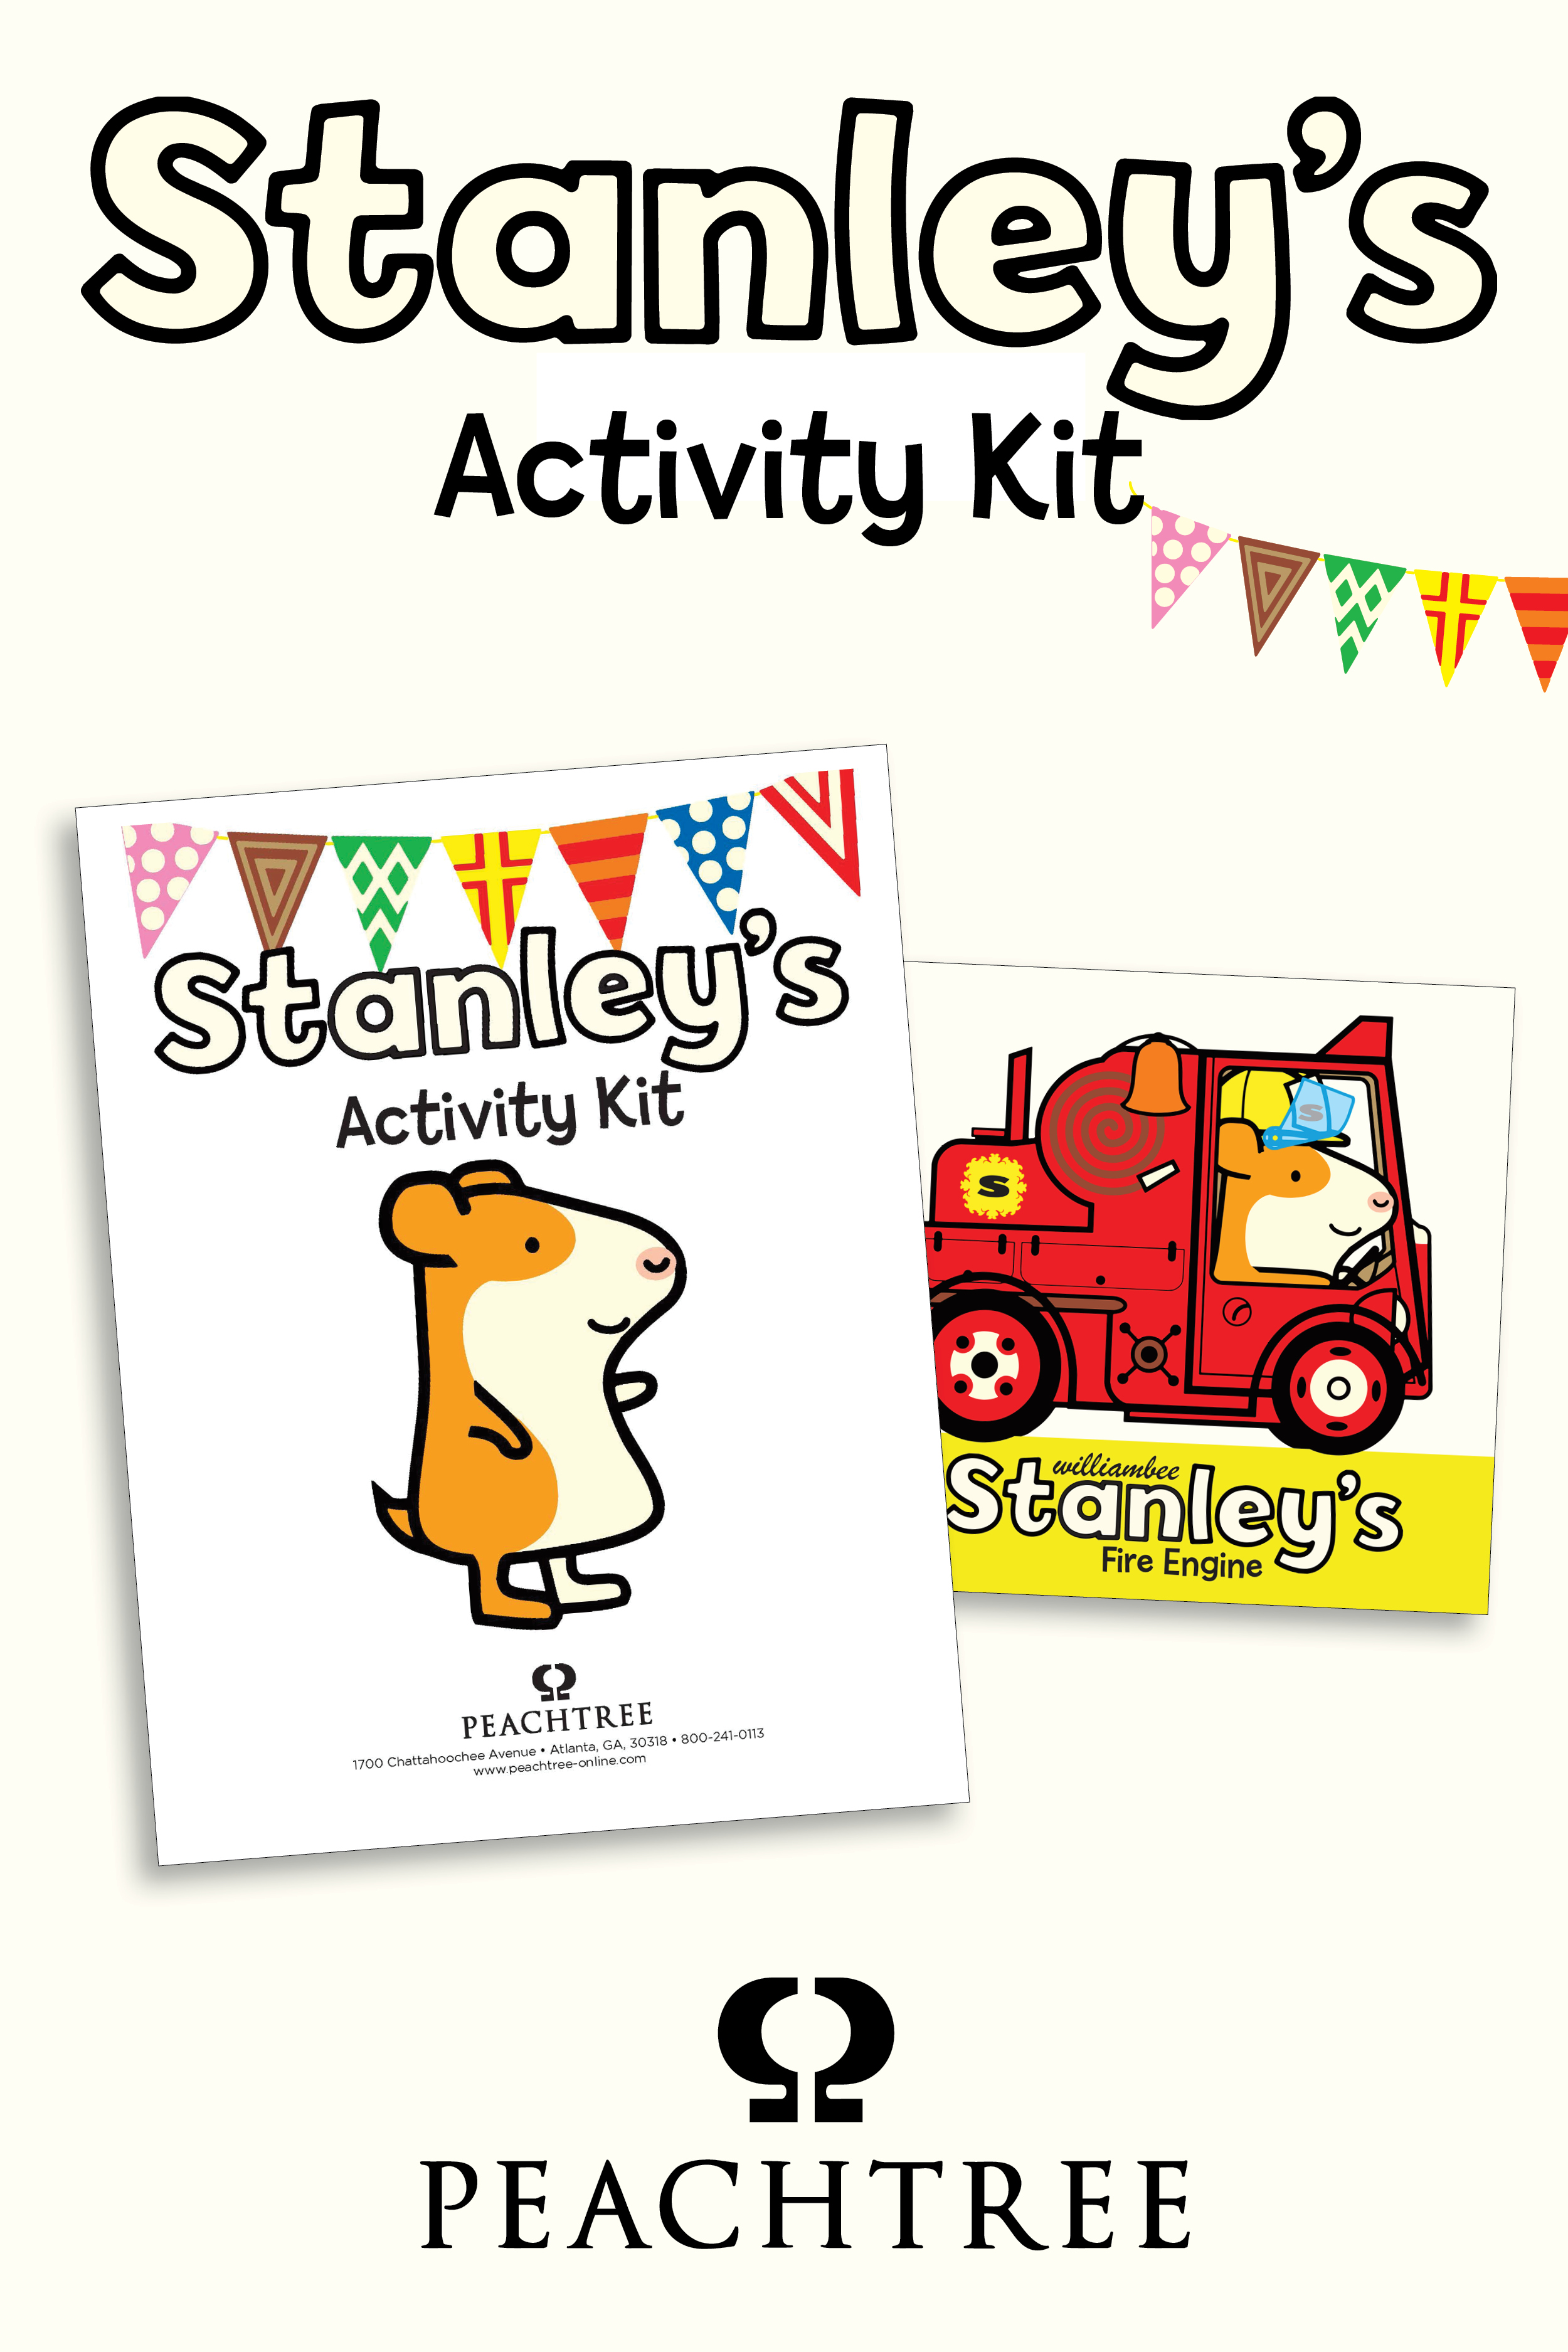 Stanley's Fire Engine Activity Kit